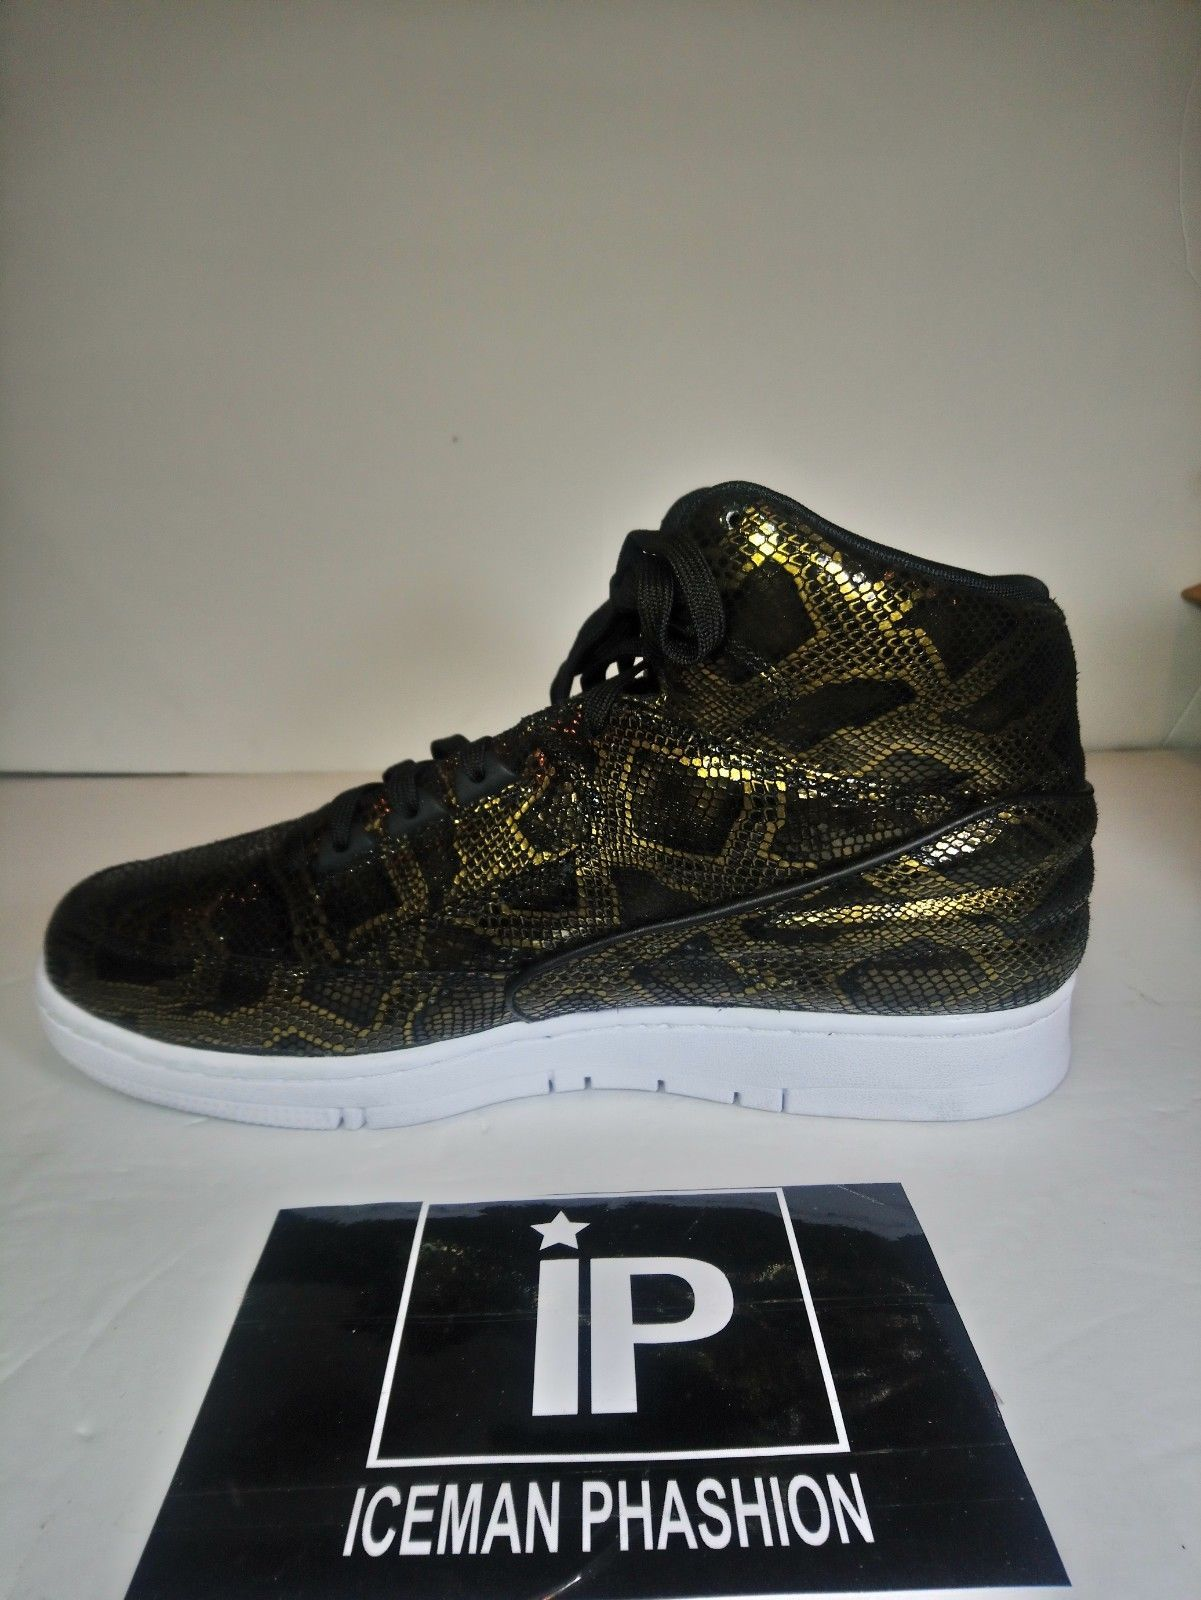 NIke Air Python Sneakers Premium Black Metallic Gold 705066 002 Men's Size 10.5